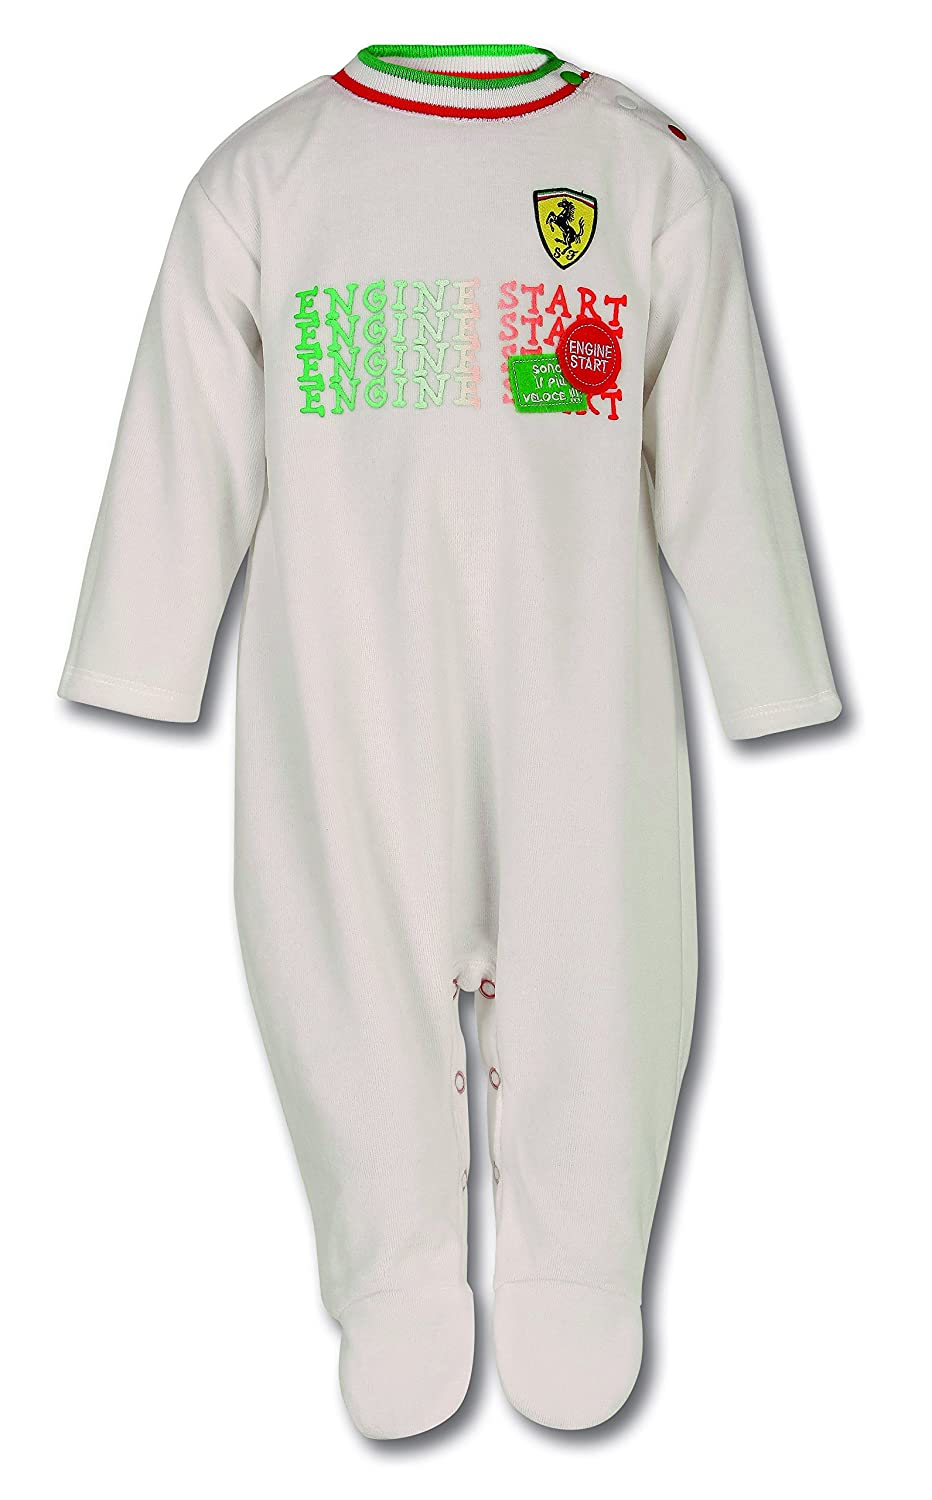 shirt polo jersey ferrari white childrensalon boys